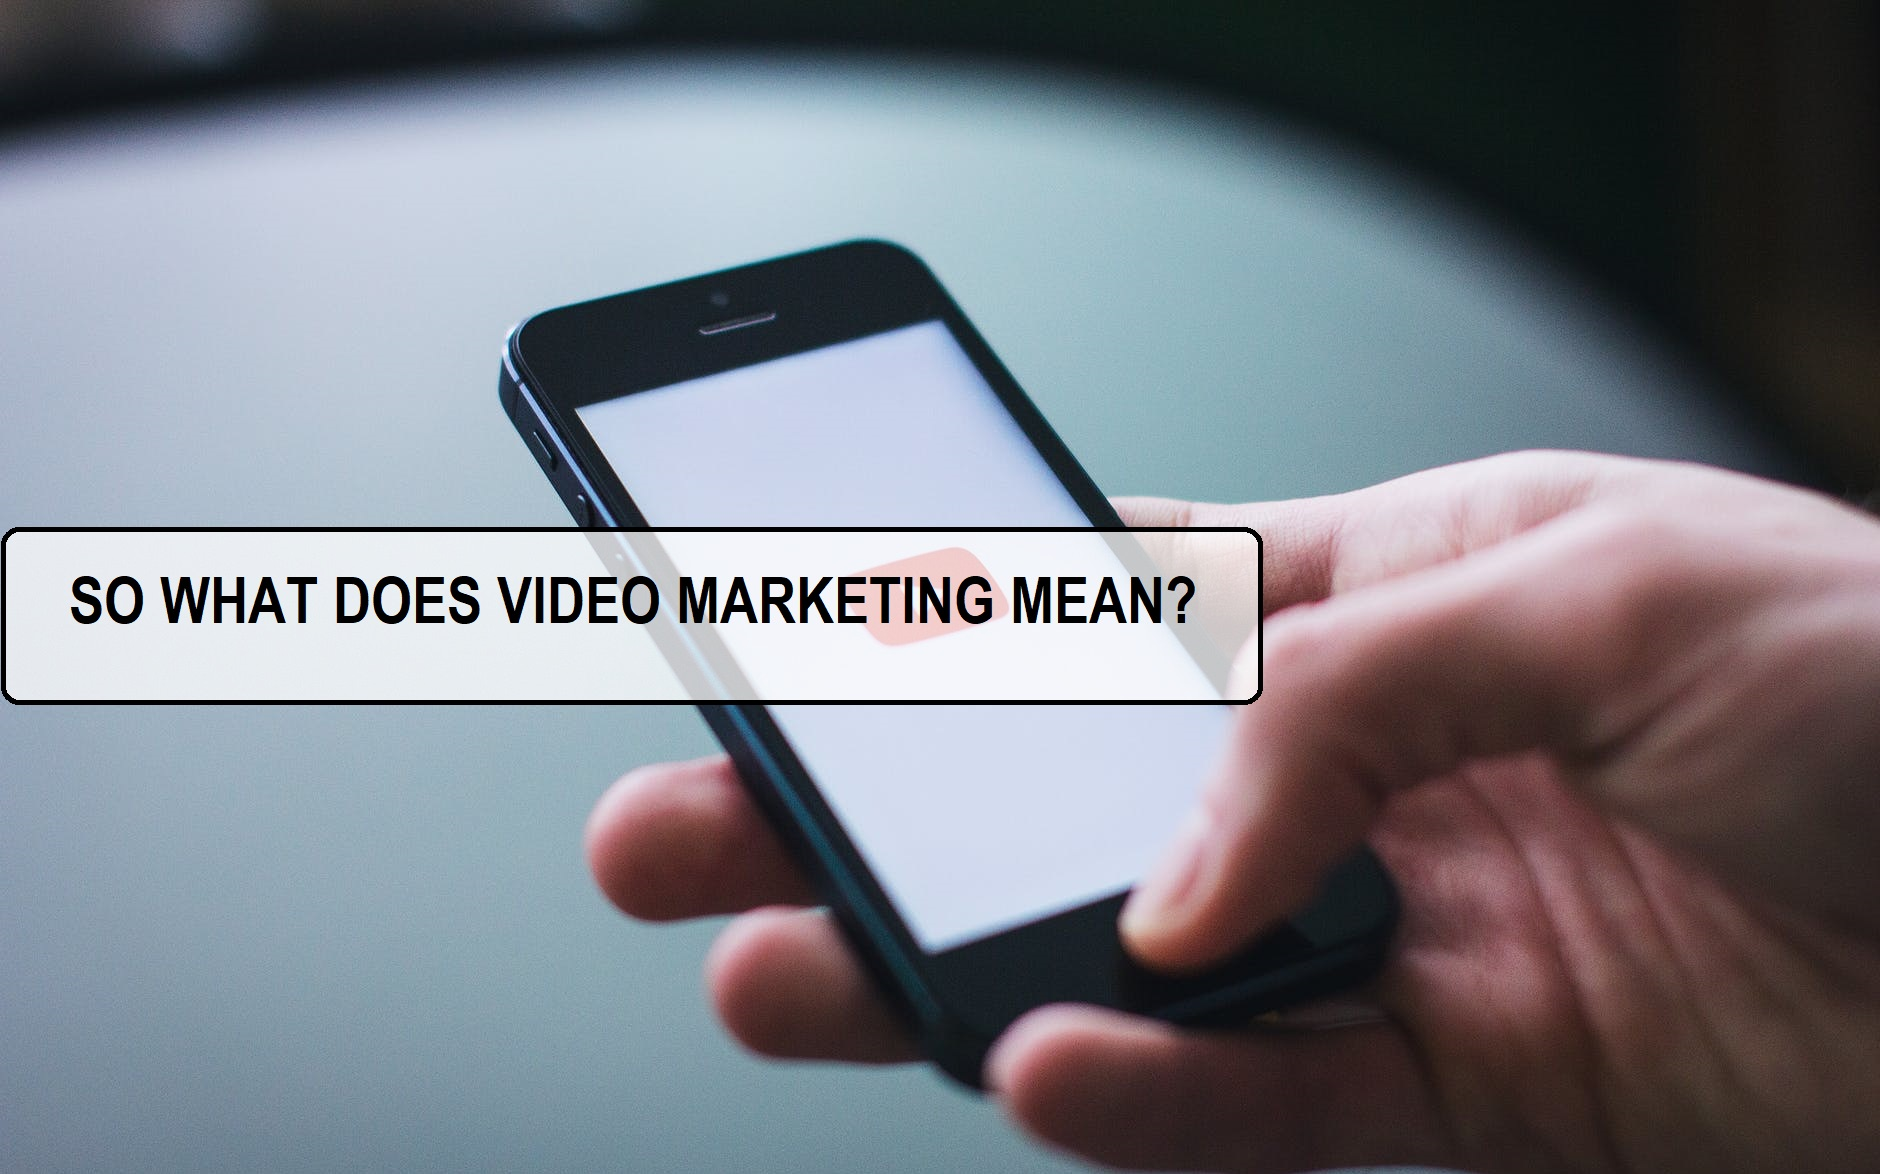 SO WHAT DOES VIDEO MARKETING MEAN?